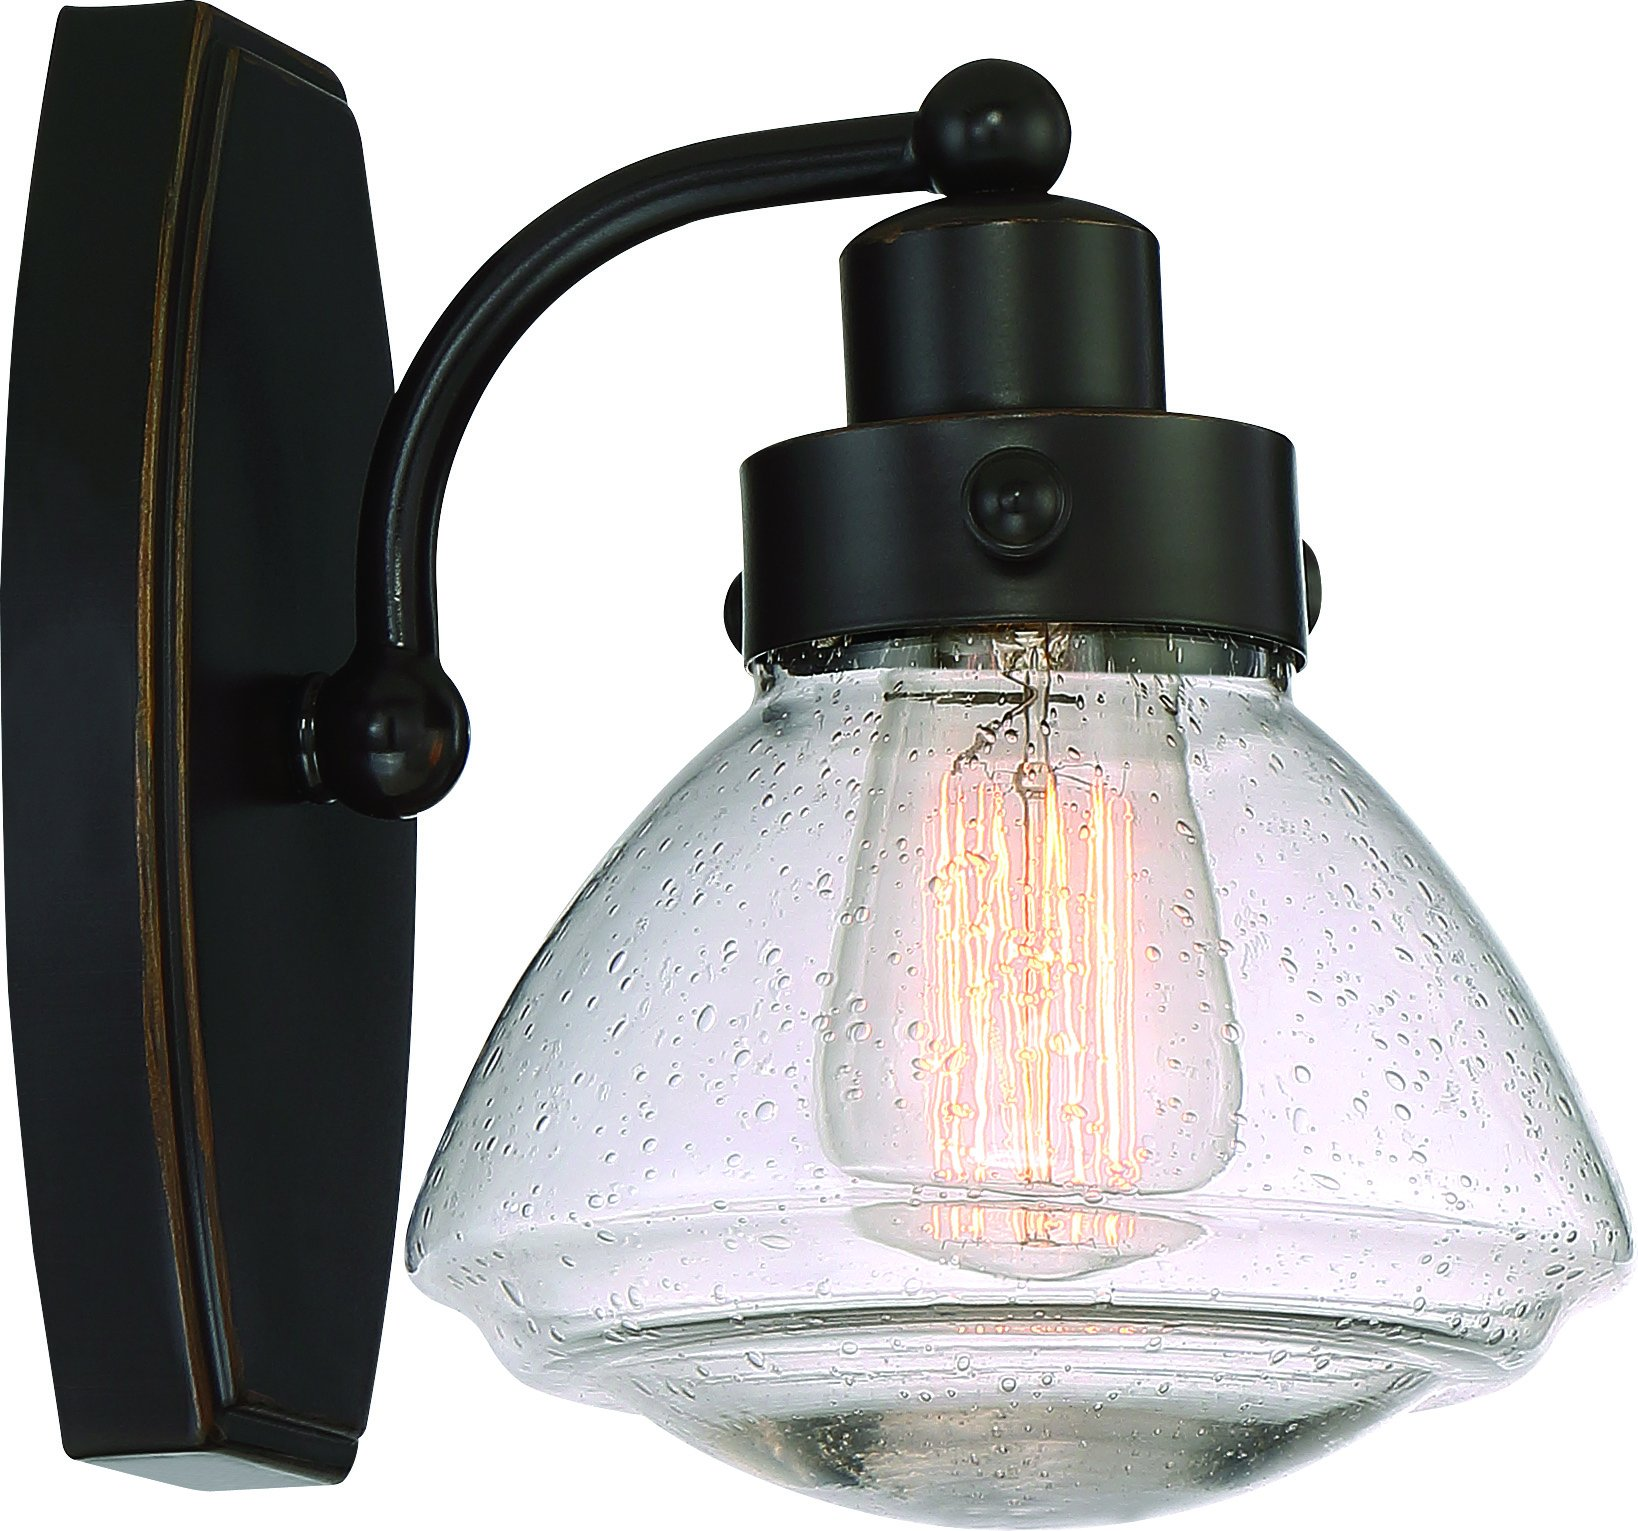 Luxury Transitional Bathroom Vanity Light, Small Size: 8.75'' H x 6.75'' W, with Rustic Style Elements, Oil Rubbed Parisian Bronze Finish and Seeded Schoolhouse Glass, UQL2650 by Urban Ambiance